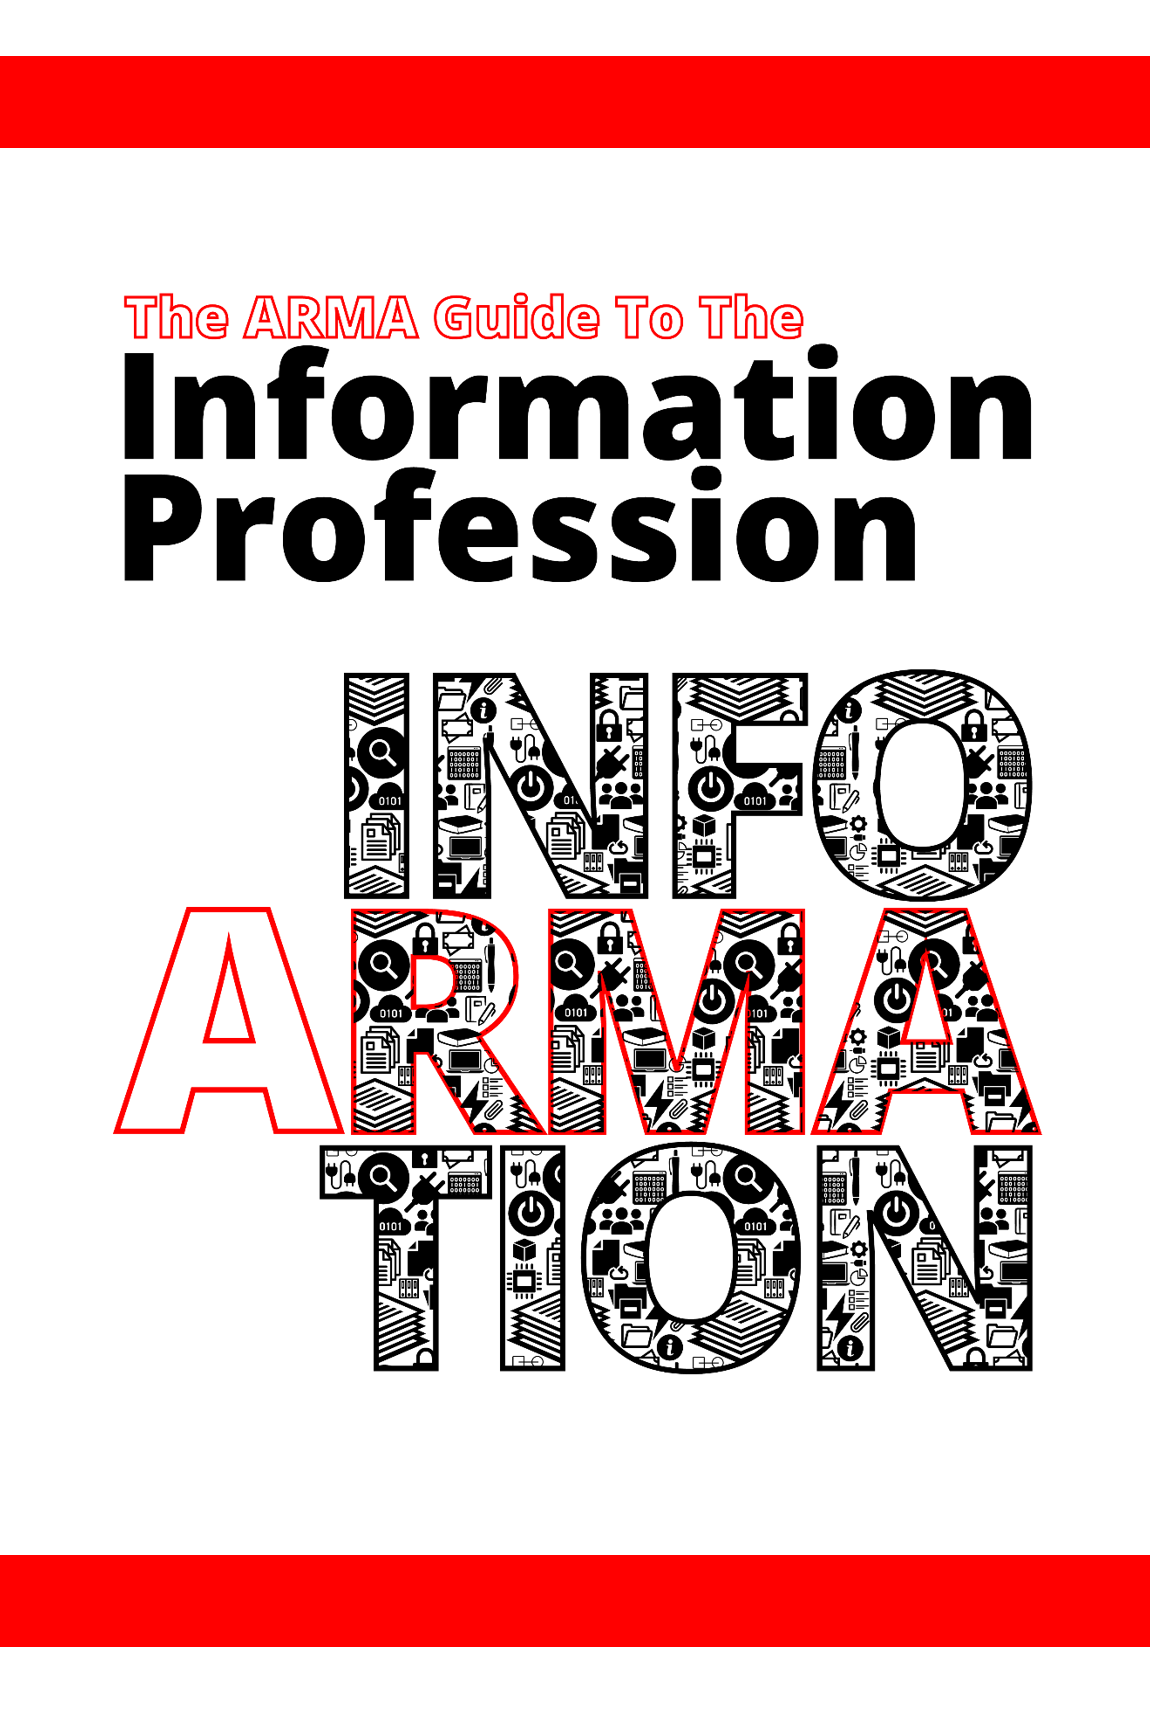 ARMA Guide to the Information Profession